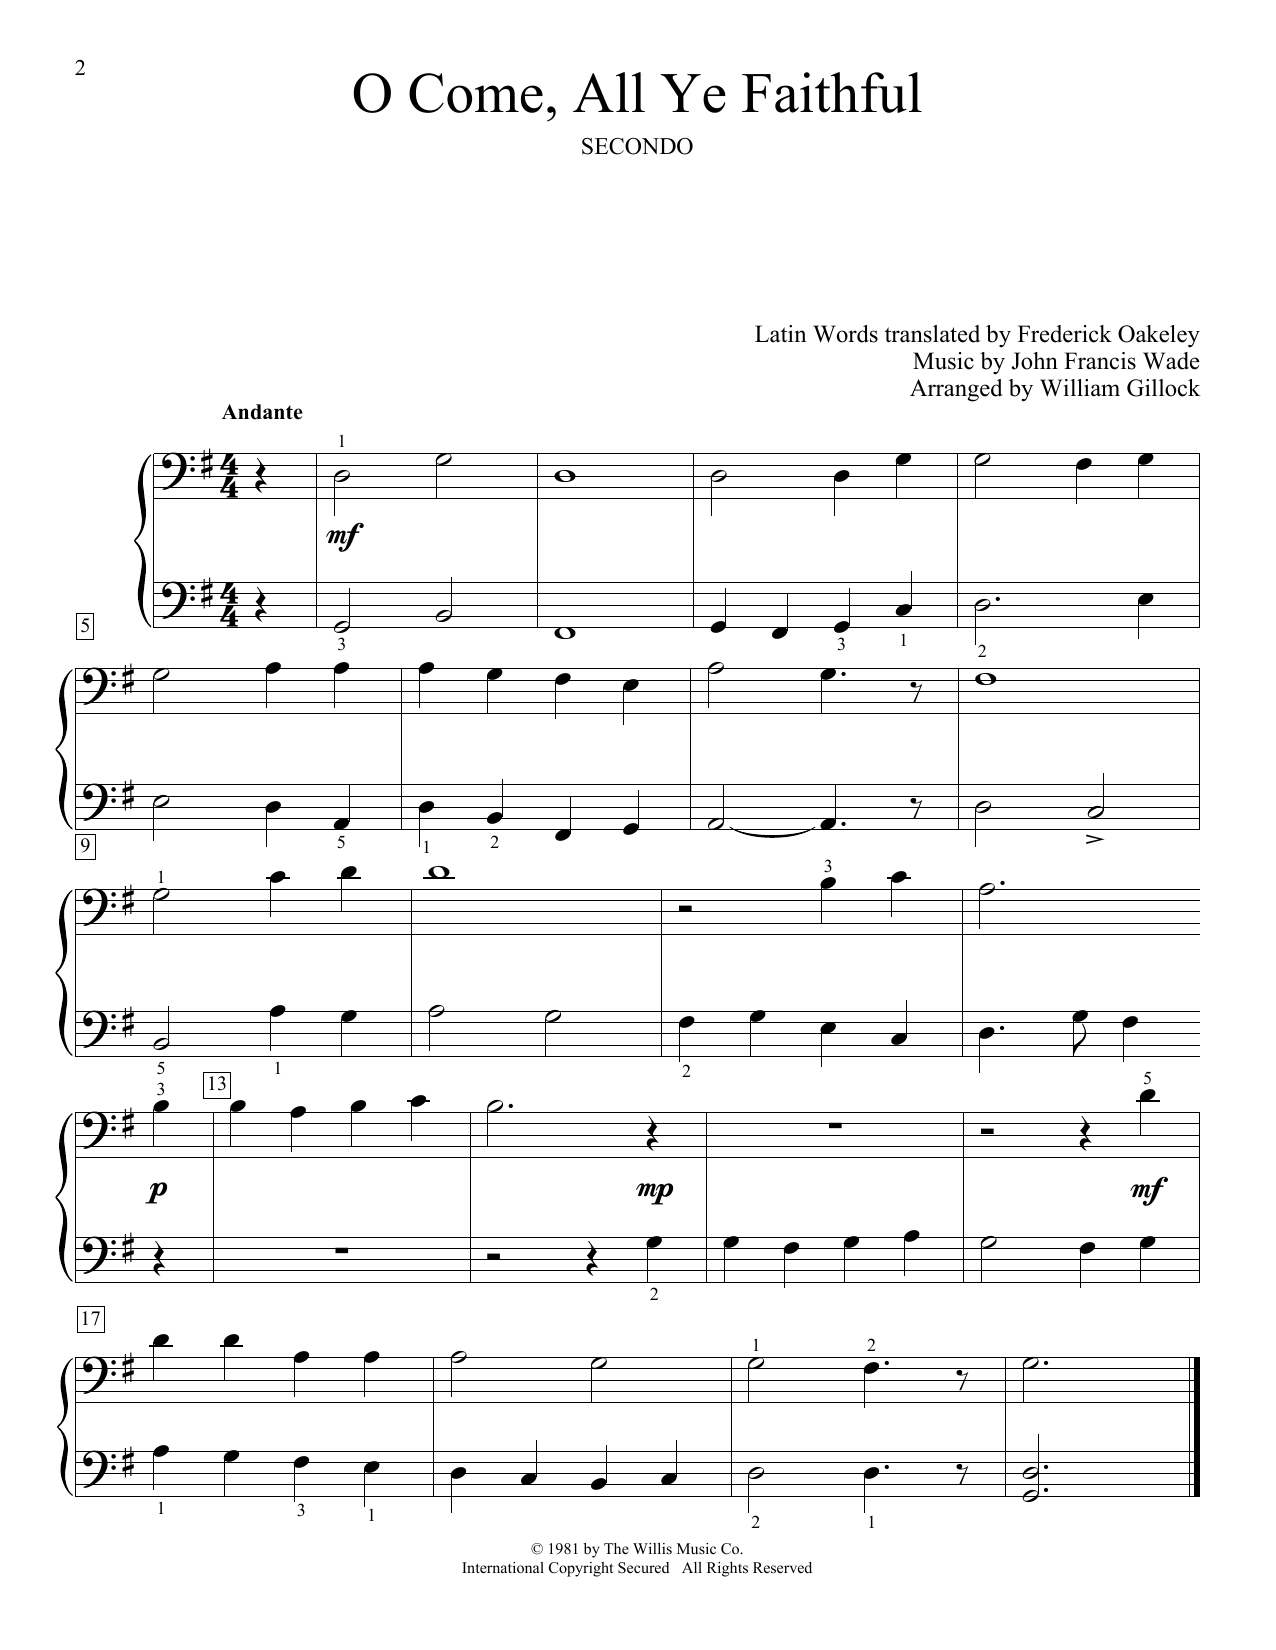 O Come, All Ye Faithful (Adeste Fideles) (Piano Duet)